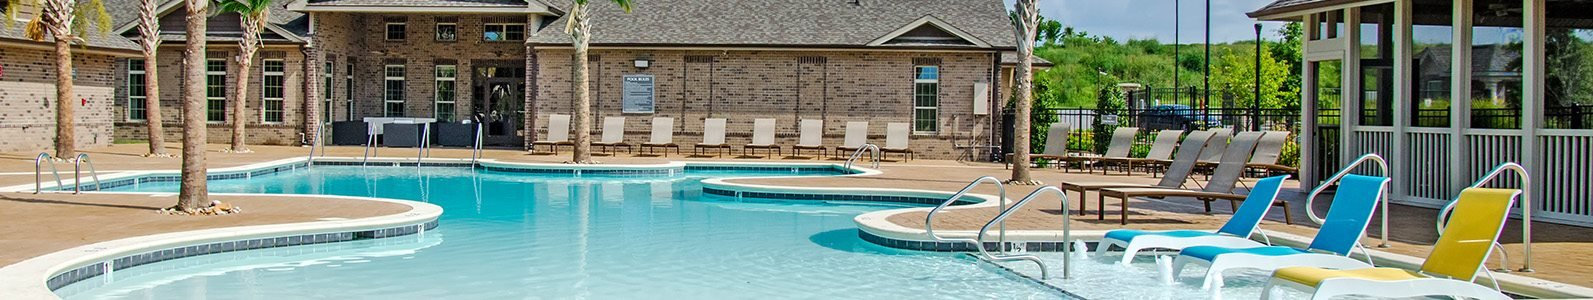 Resort-Inspired Pool with Sunning Ledge and Bubblers at Glass Creek Apartments, Mt Juliet, TN